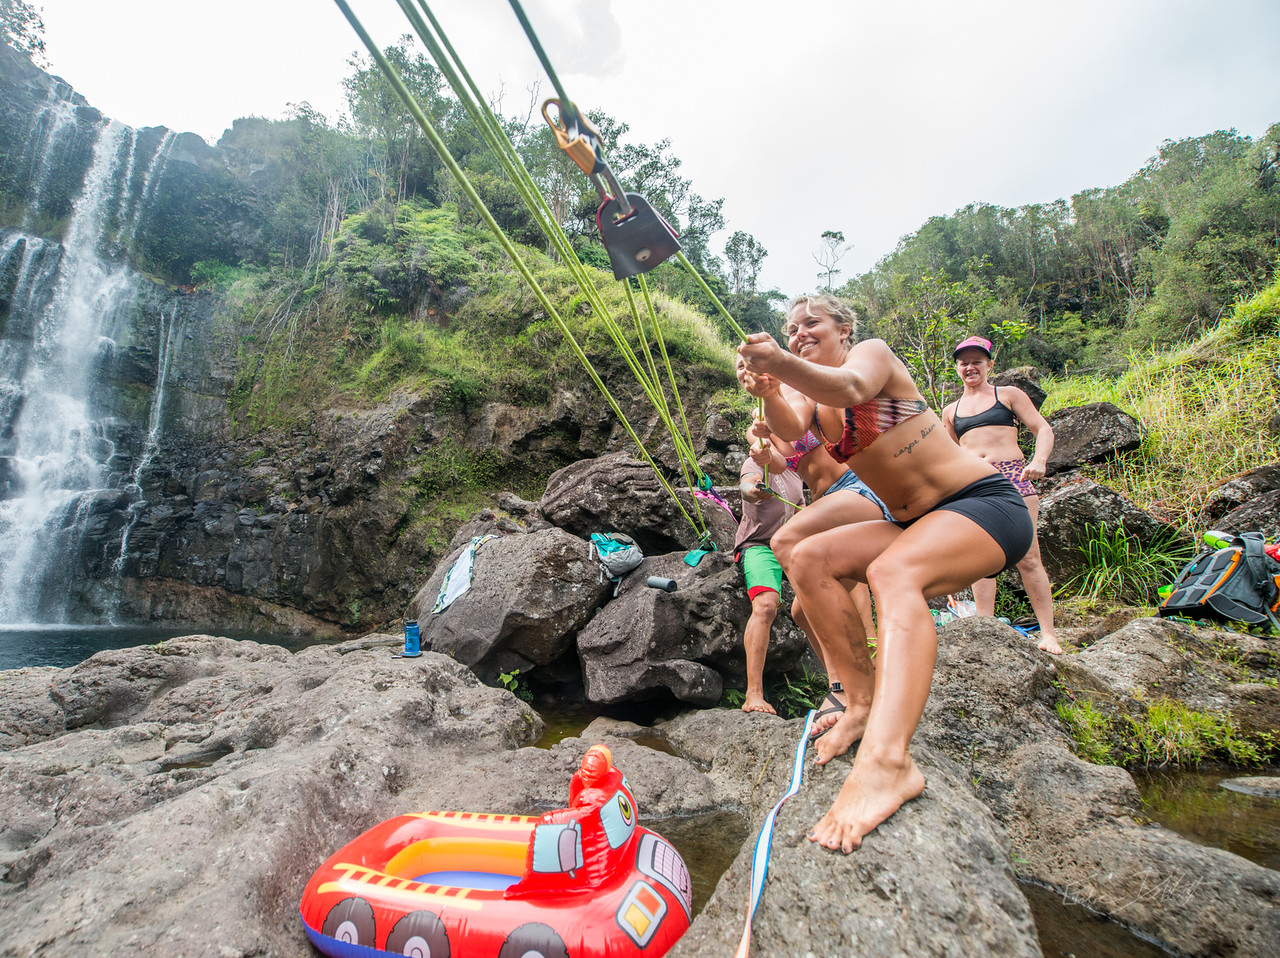 Hidden; Falls; Hilo; Hawaii; 111; Adventure; Big Island; By Gabe DeWitt; Dragon Falls; Favorite things; Friends; HW; Hawaii; Hiking; Hilo; Nikon; Nikon D800; Places; Slackline; Travel; Winter in Hawaii; hidden falls; island; outex; outex housing; water fall; water falls , Hawaii Slake Life